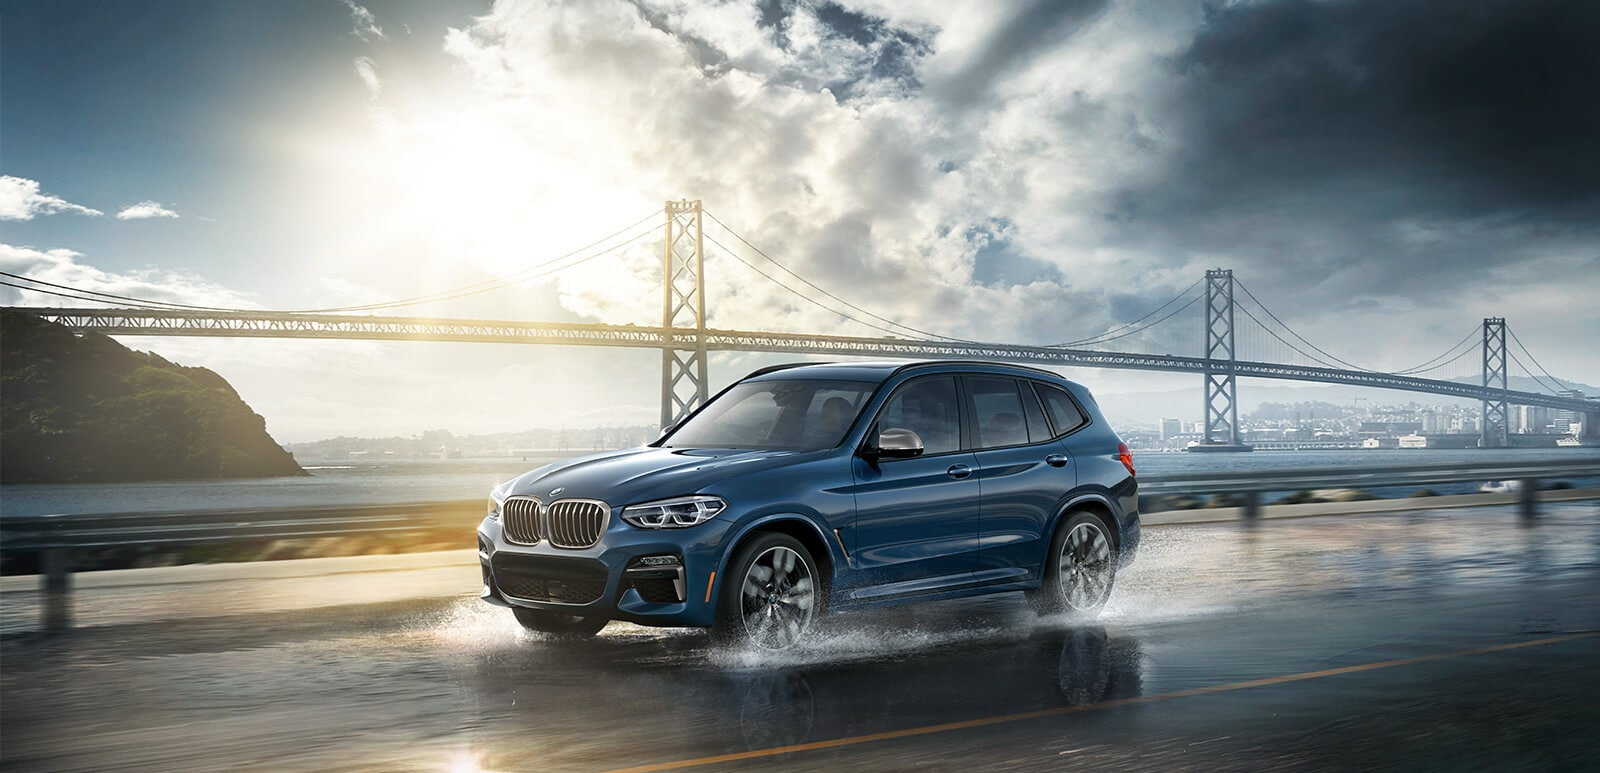 A 2018 BMW X3 M40i drives along a damp road in front of a long suspension bridge